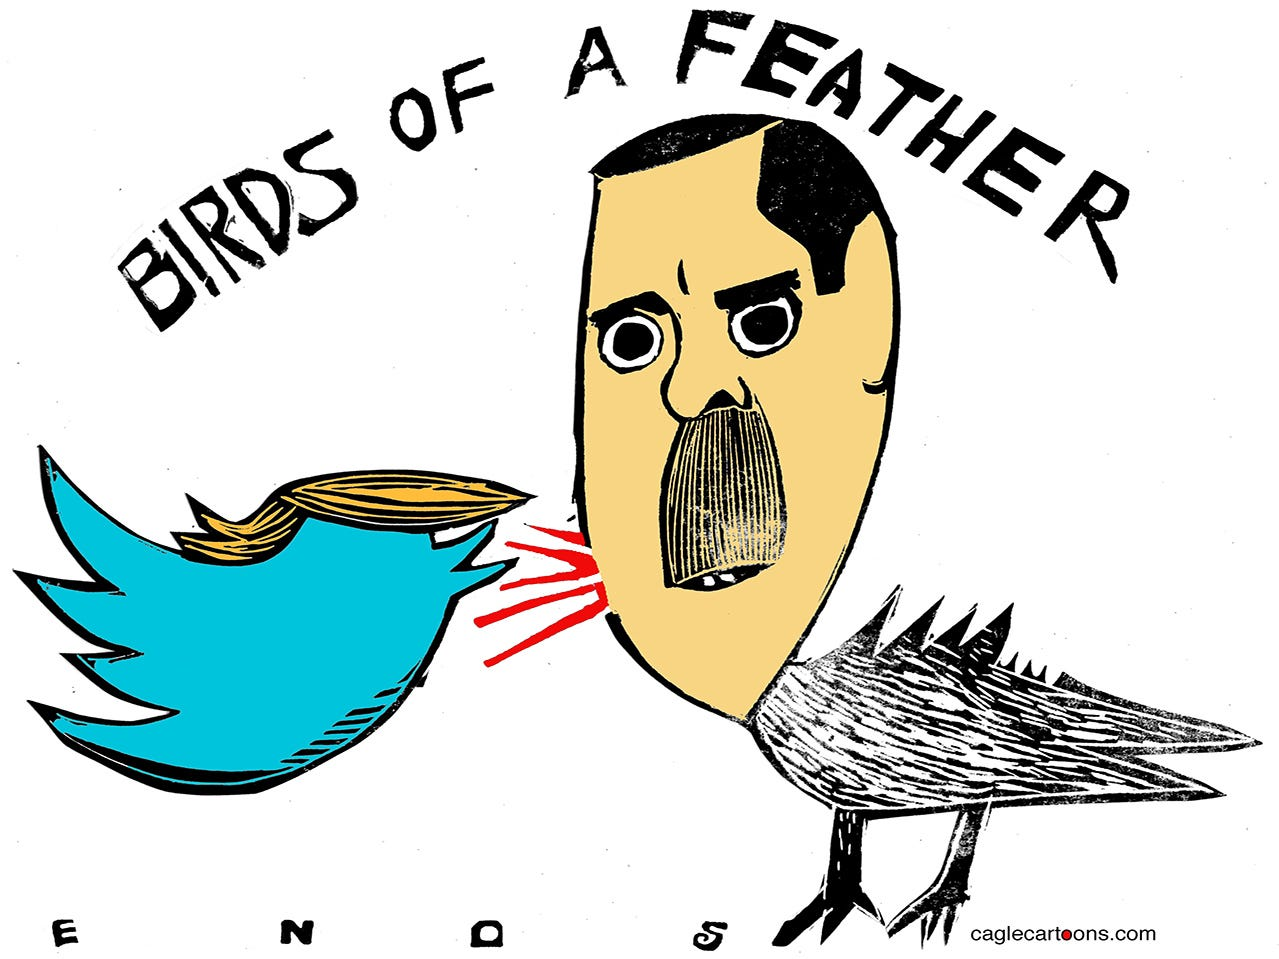 Devin Nunes' Twitter lawsuit is meant to lay the groundwork to regulate social media: Today's talker